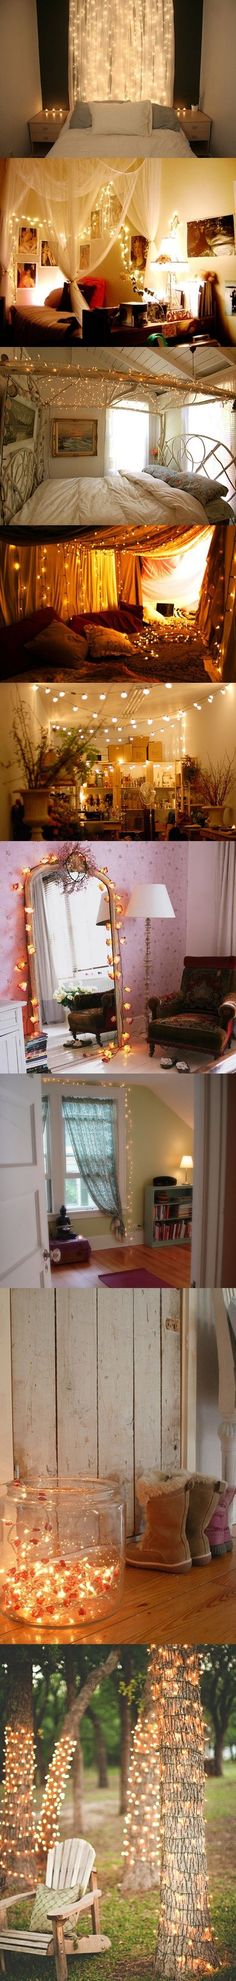 Decorating with lights